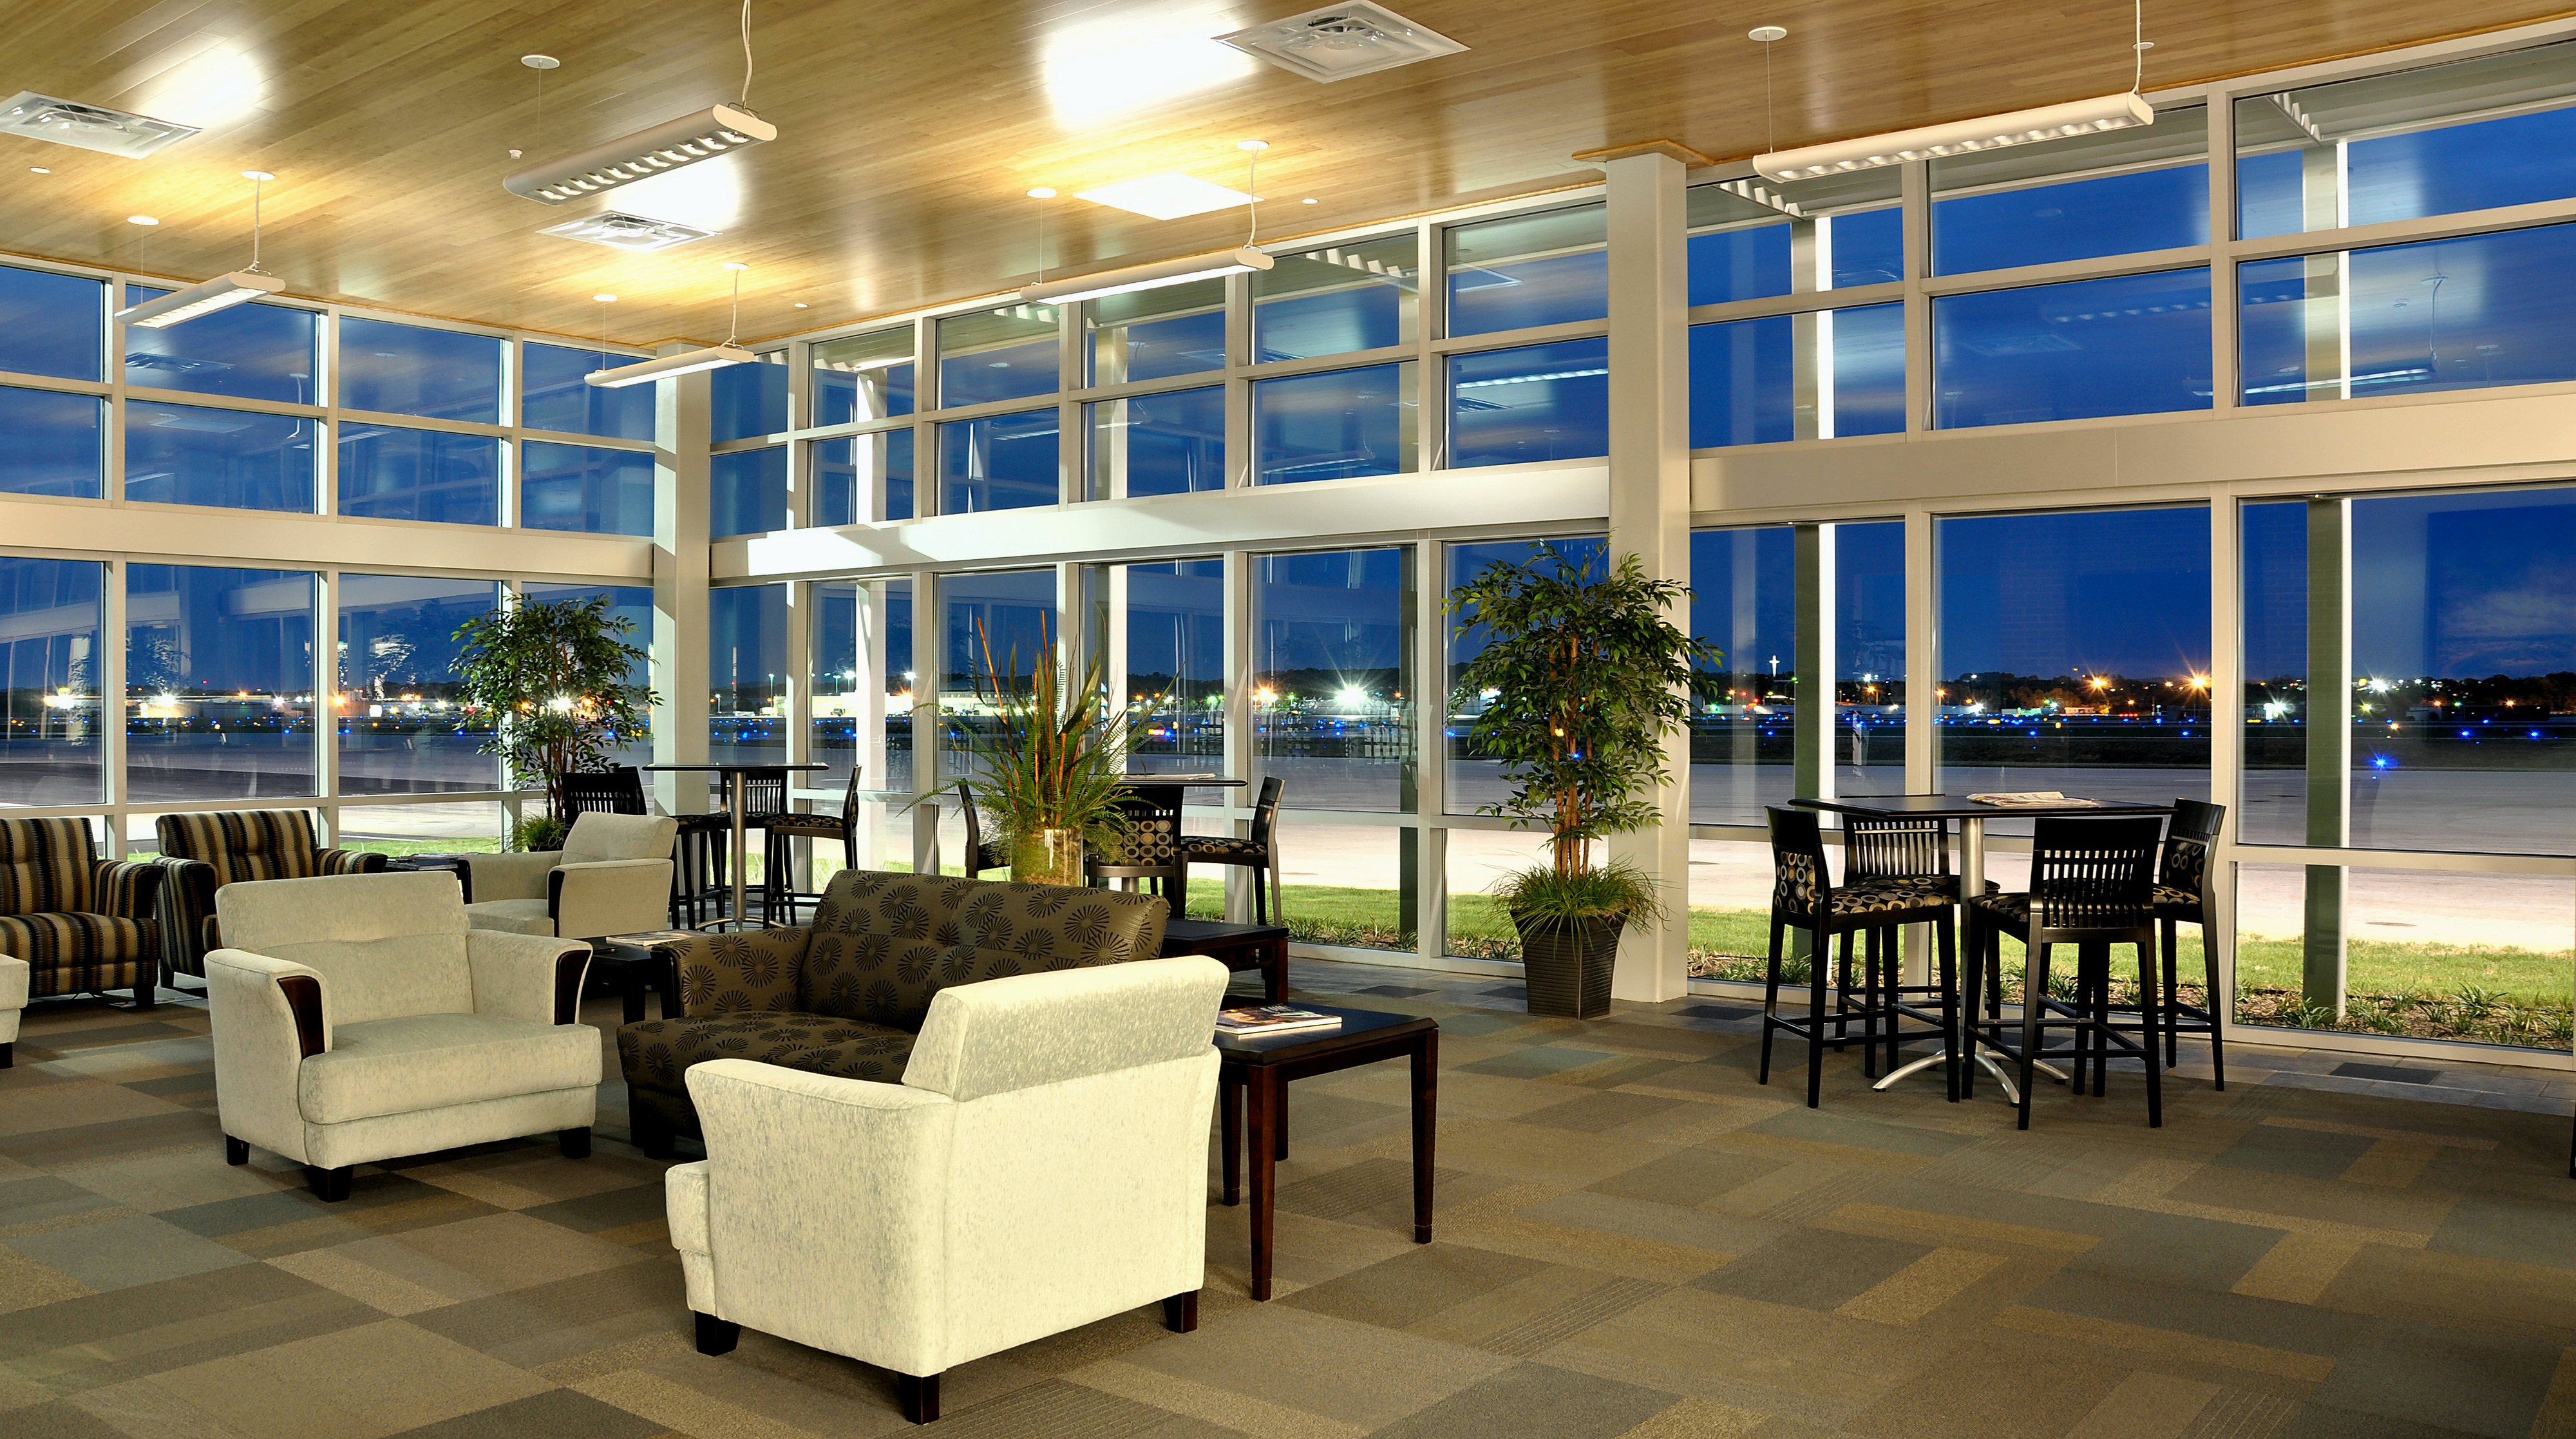 Our interior designers  have designed everything from offices to healthcare facilities, and for each project, we create a unique look and feel that best suits the client's preferred style and work environment.